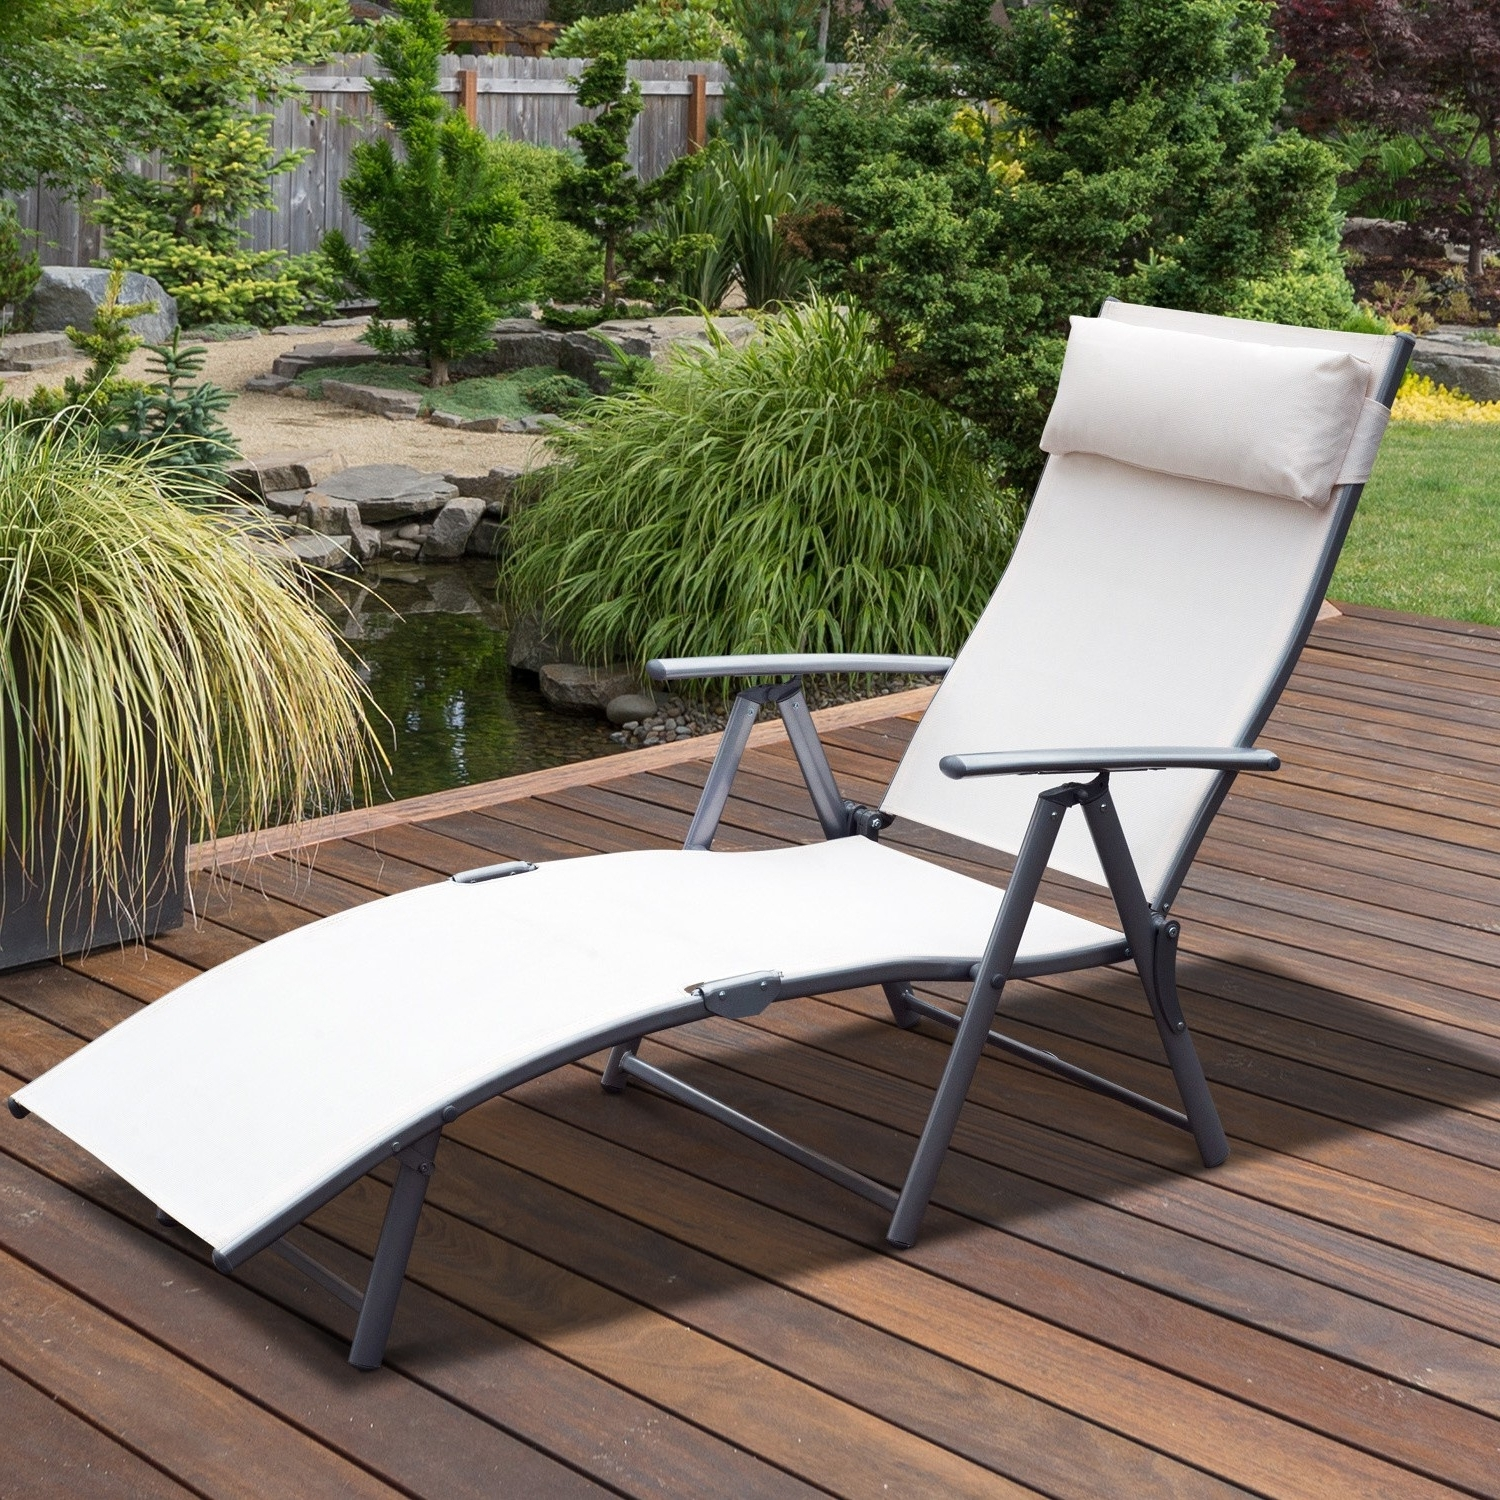 Heavy Duty Outdoor Chaise Lounge Chairs Intended For 2017 Lounge Chair : Lawn Chairs For Big And Tall Lawn Chairs 300 Lb (View 13 of 15)